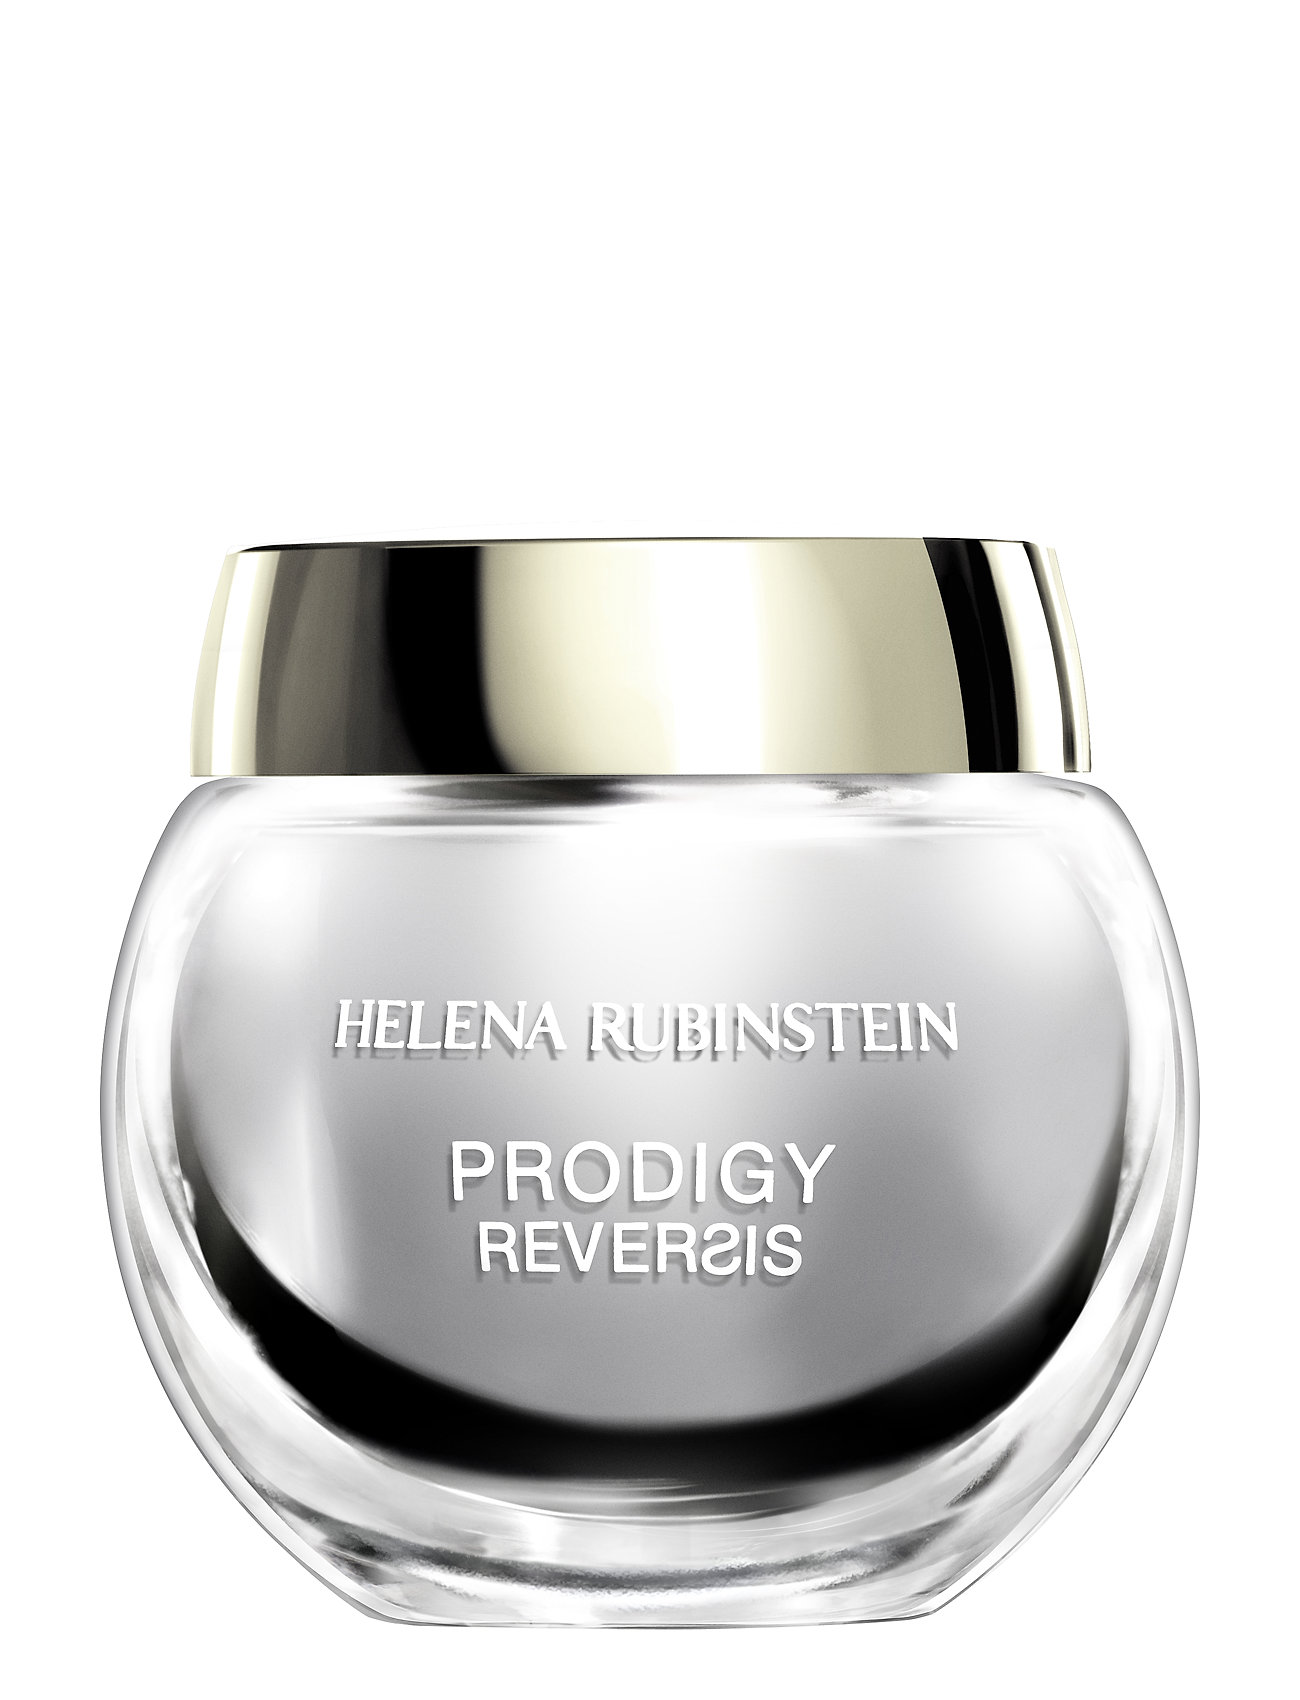 Image of Prodigy Reversis Creme Normal Skin 50 Ml Beauty WOMEN Skin Care Face Day Creams Nude Helena Rubinstein (3264706419)